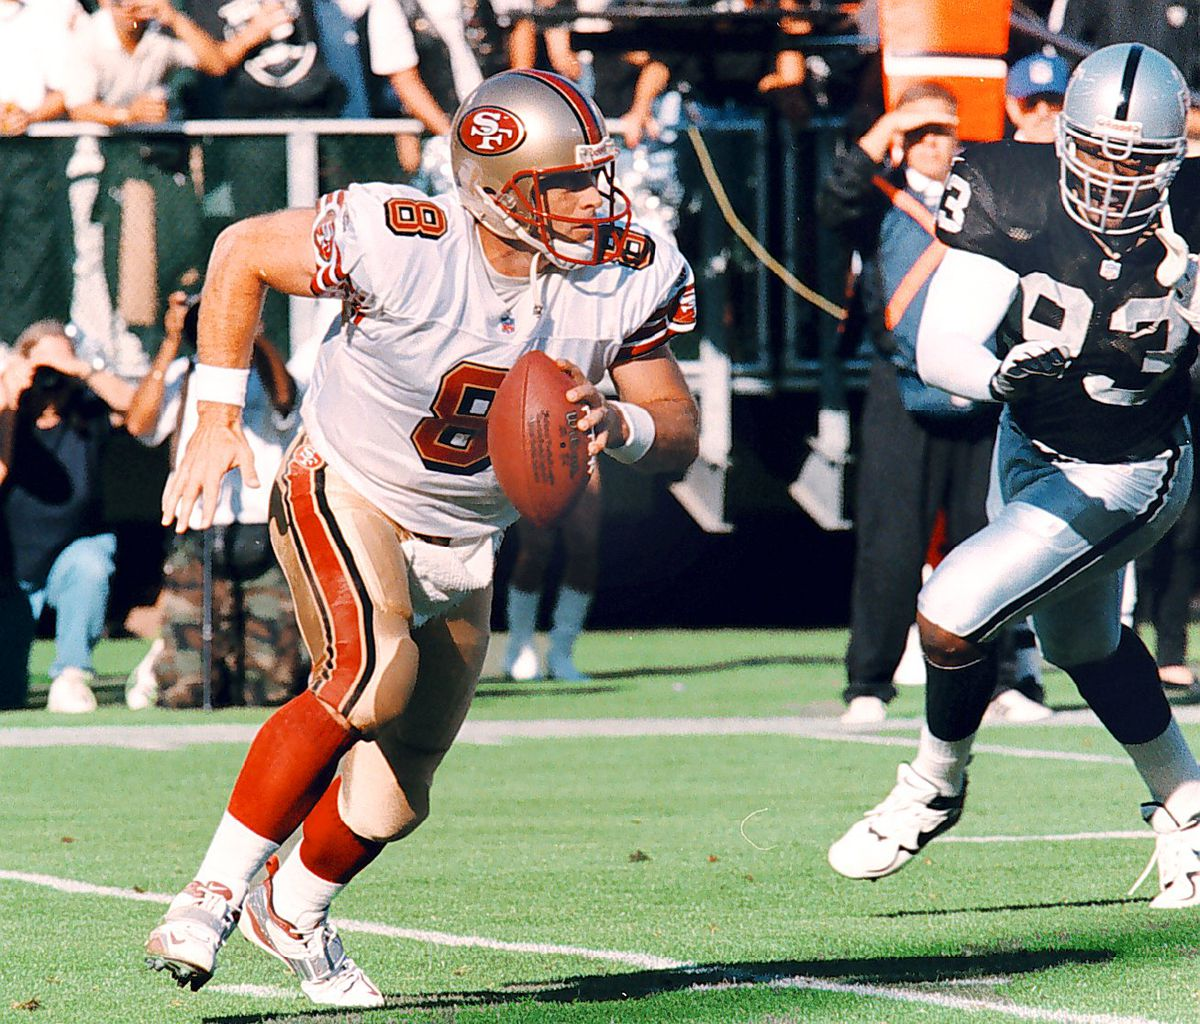 Oakland, CA August 30, 1999: San Francisco quarterback Steve Young is chased by Oakland Raider defensive end James Harris in the first quarter. Young ran for a first down. (Ron Riesterer/Oakland Tribune)